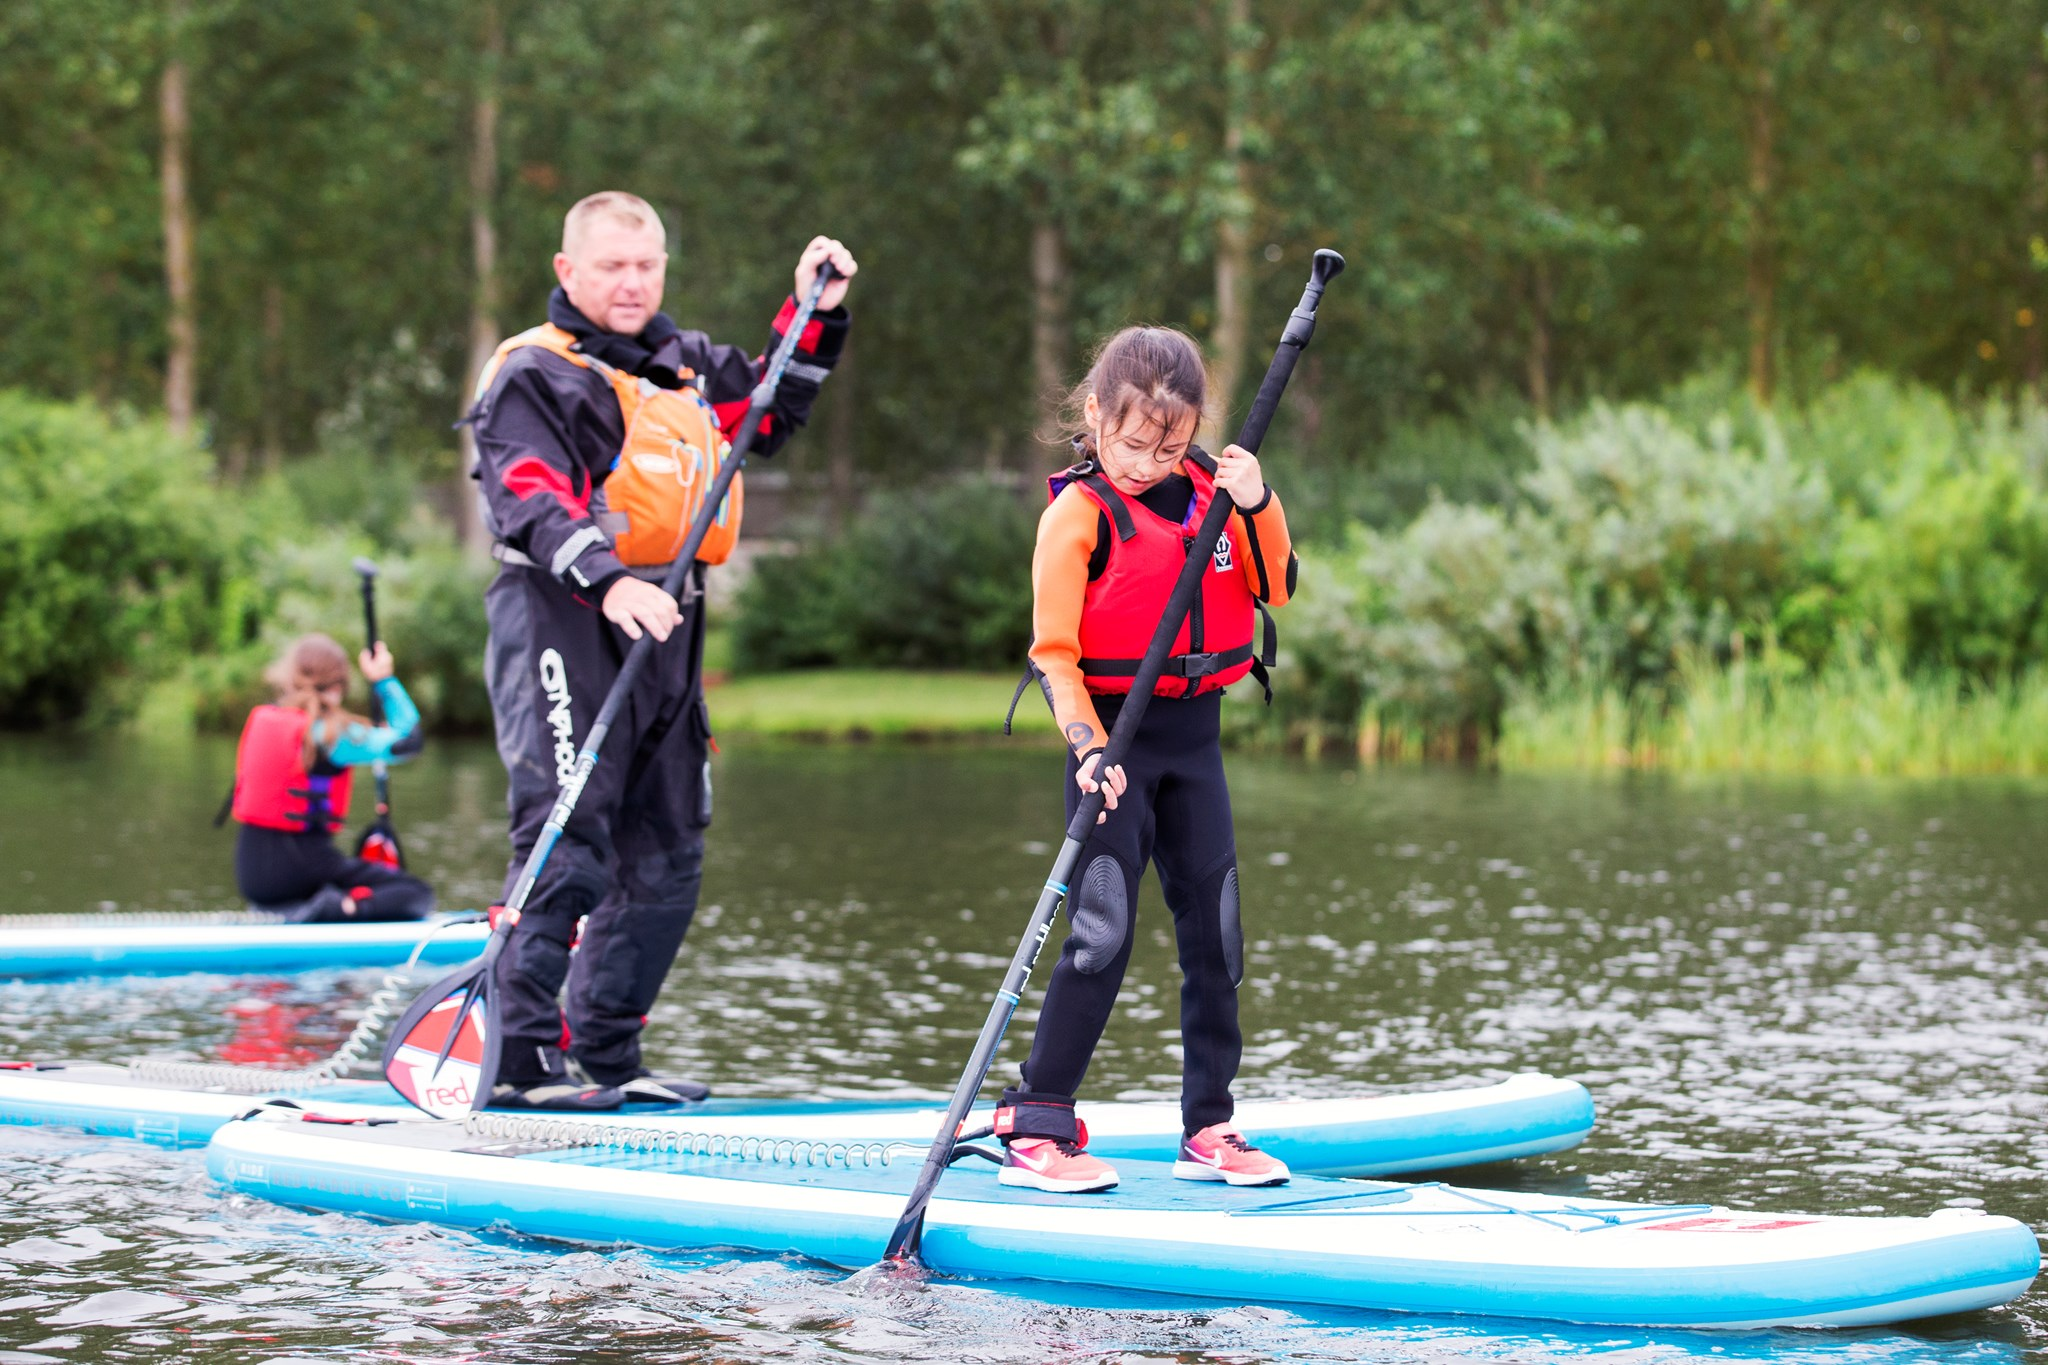 paddle-boarding-willen-lake-instructor.jpg